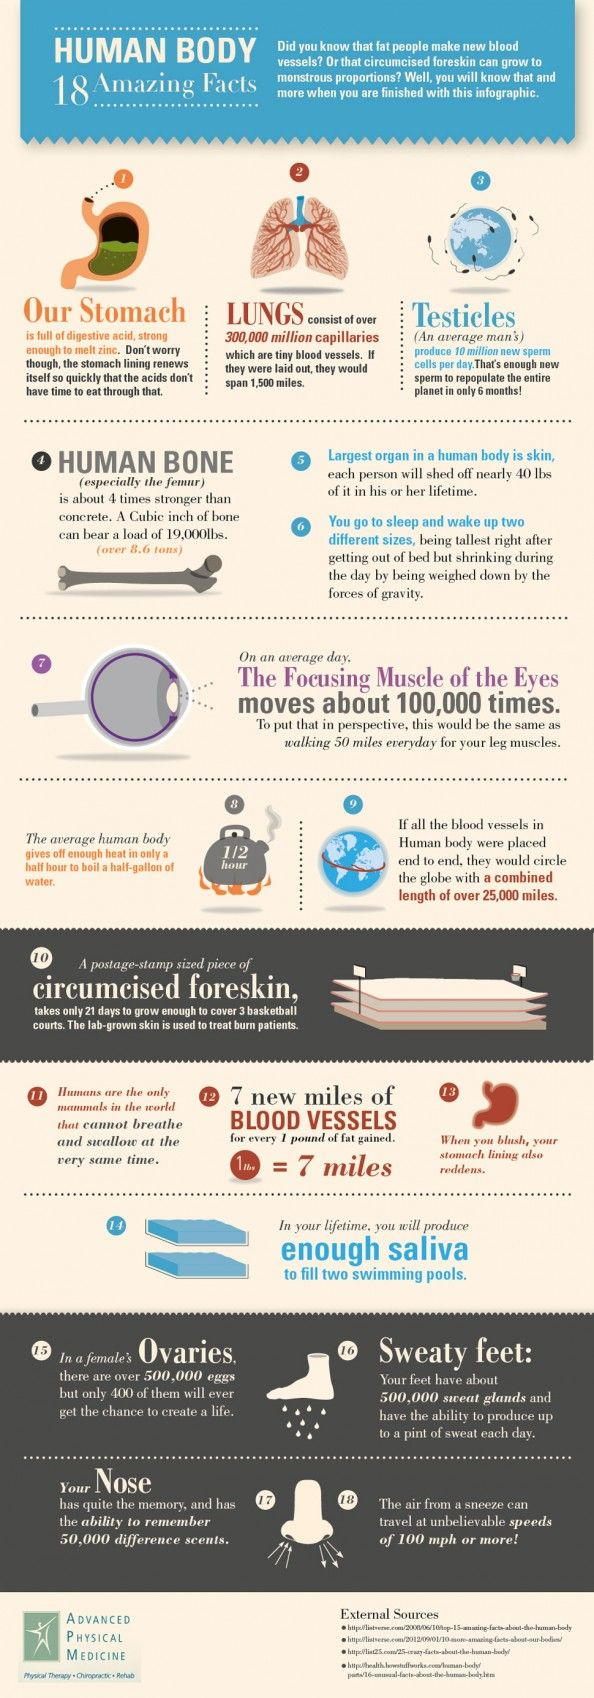 Amazing Facts About The Human Body Infographic Health - 18 amazing facts you probably didnt know about google